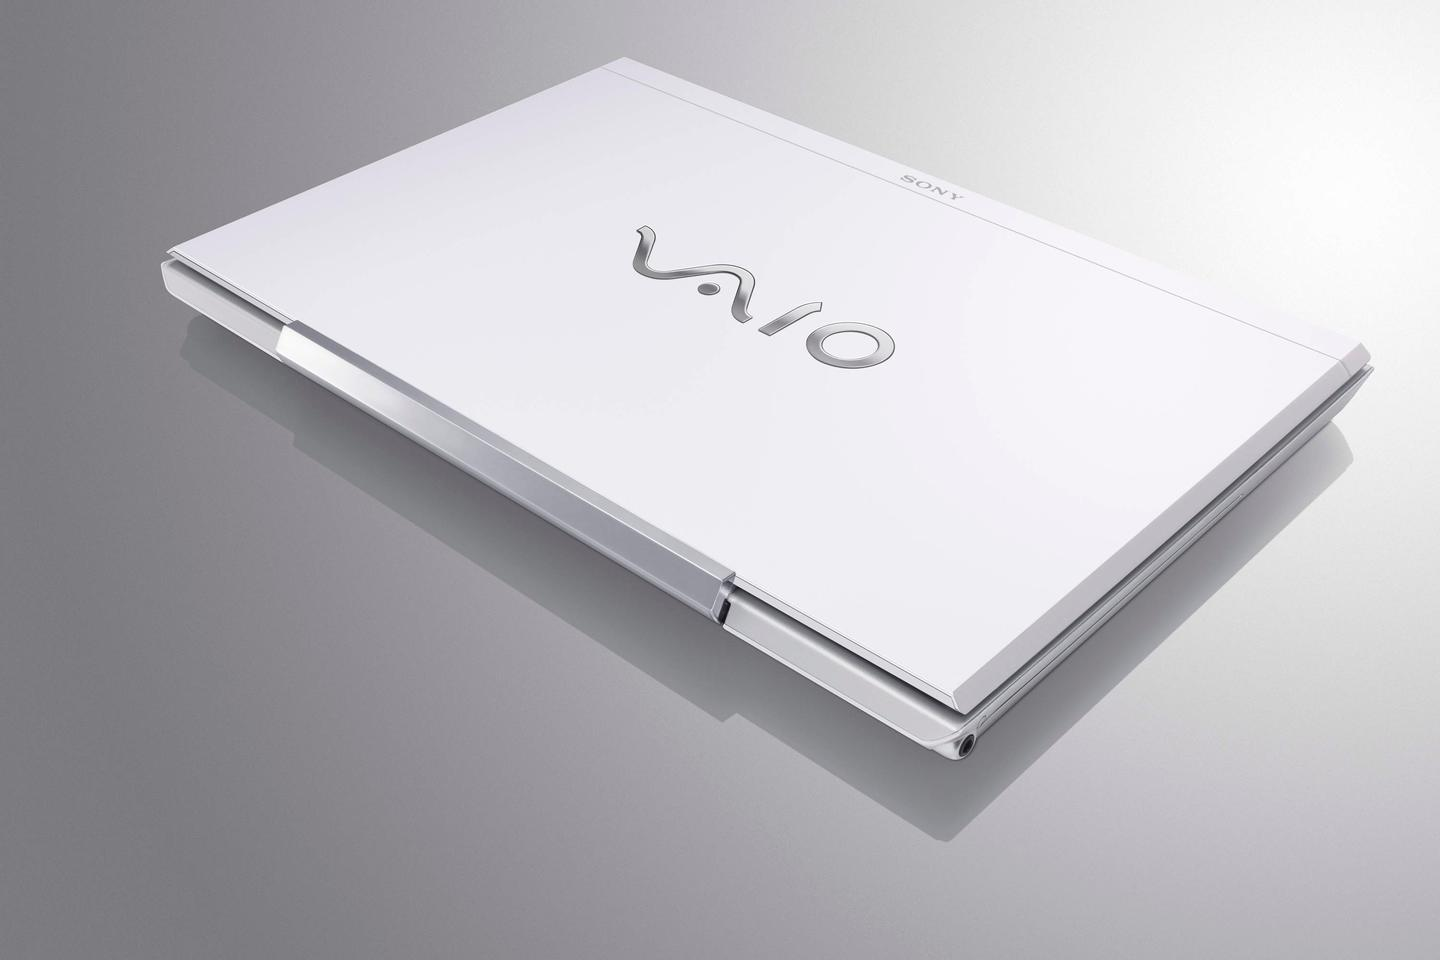 The new VAIO S series notebooks sport a magnesium housing and aluminum palmrest